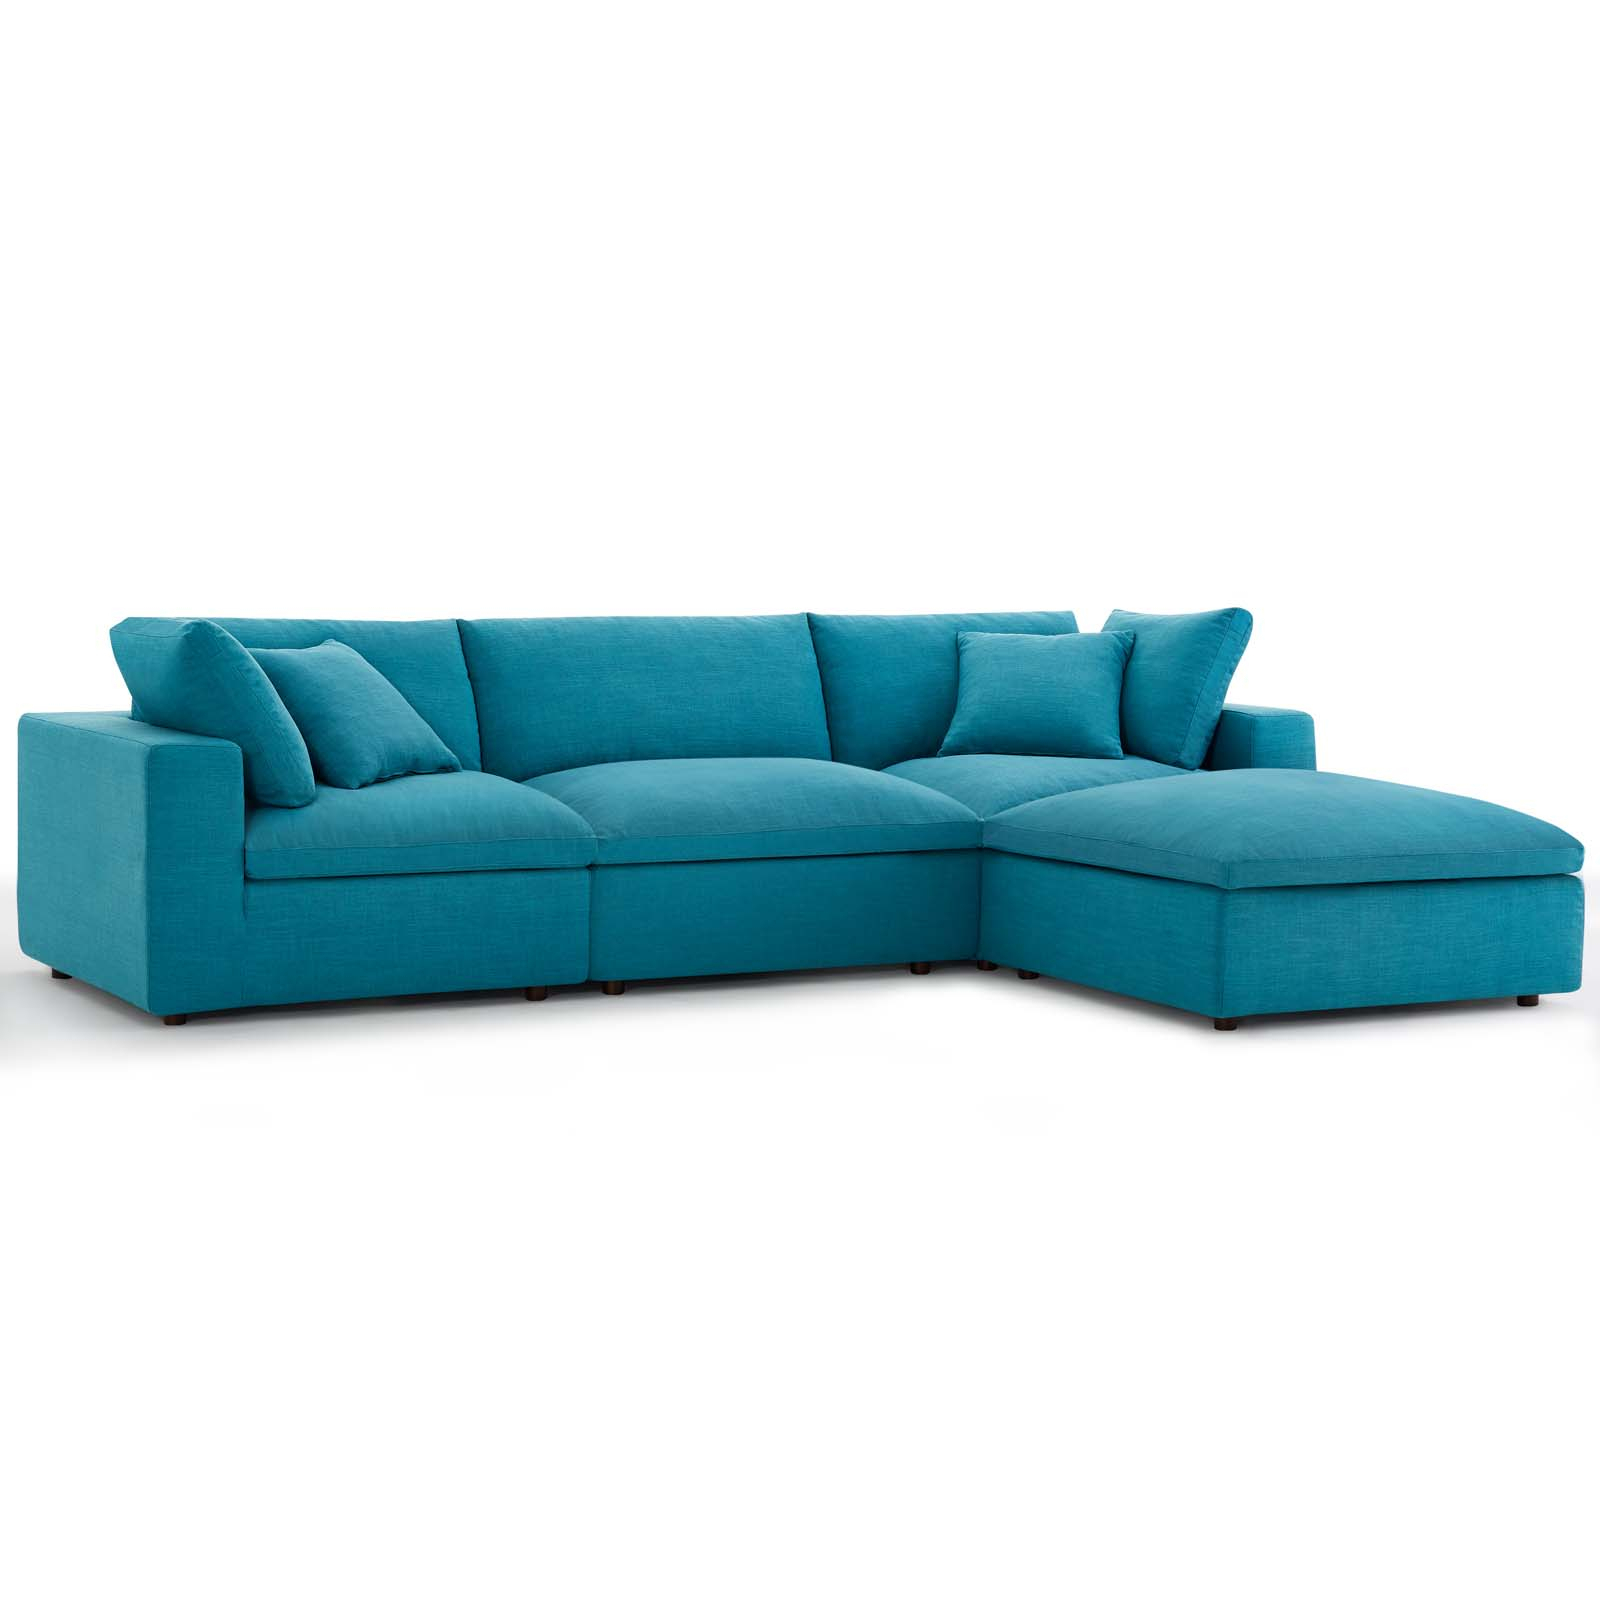 Commix Down Filled Overstuffed 4 Piece Sectional Sofa Set Teal For Down Filled Sectional Sofas (View 14 of 15)